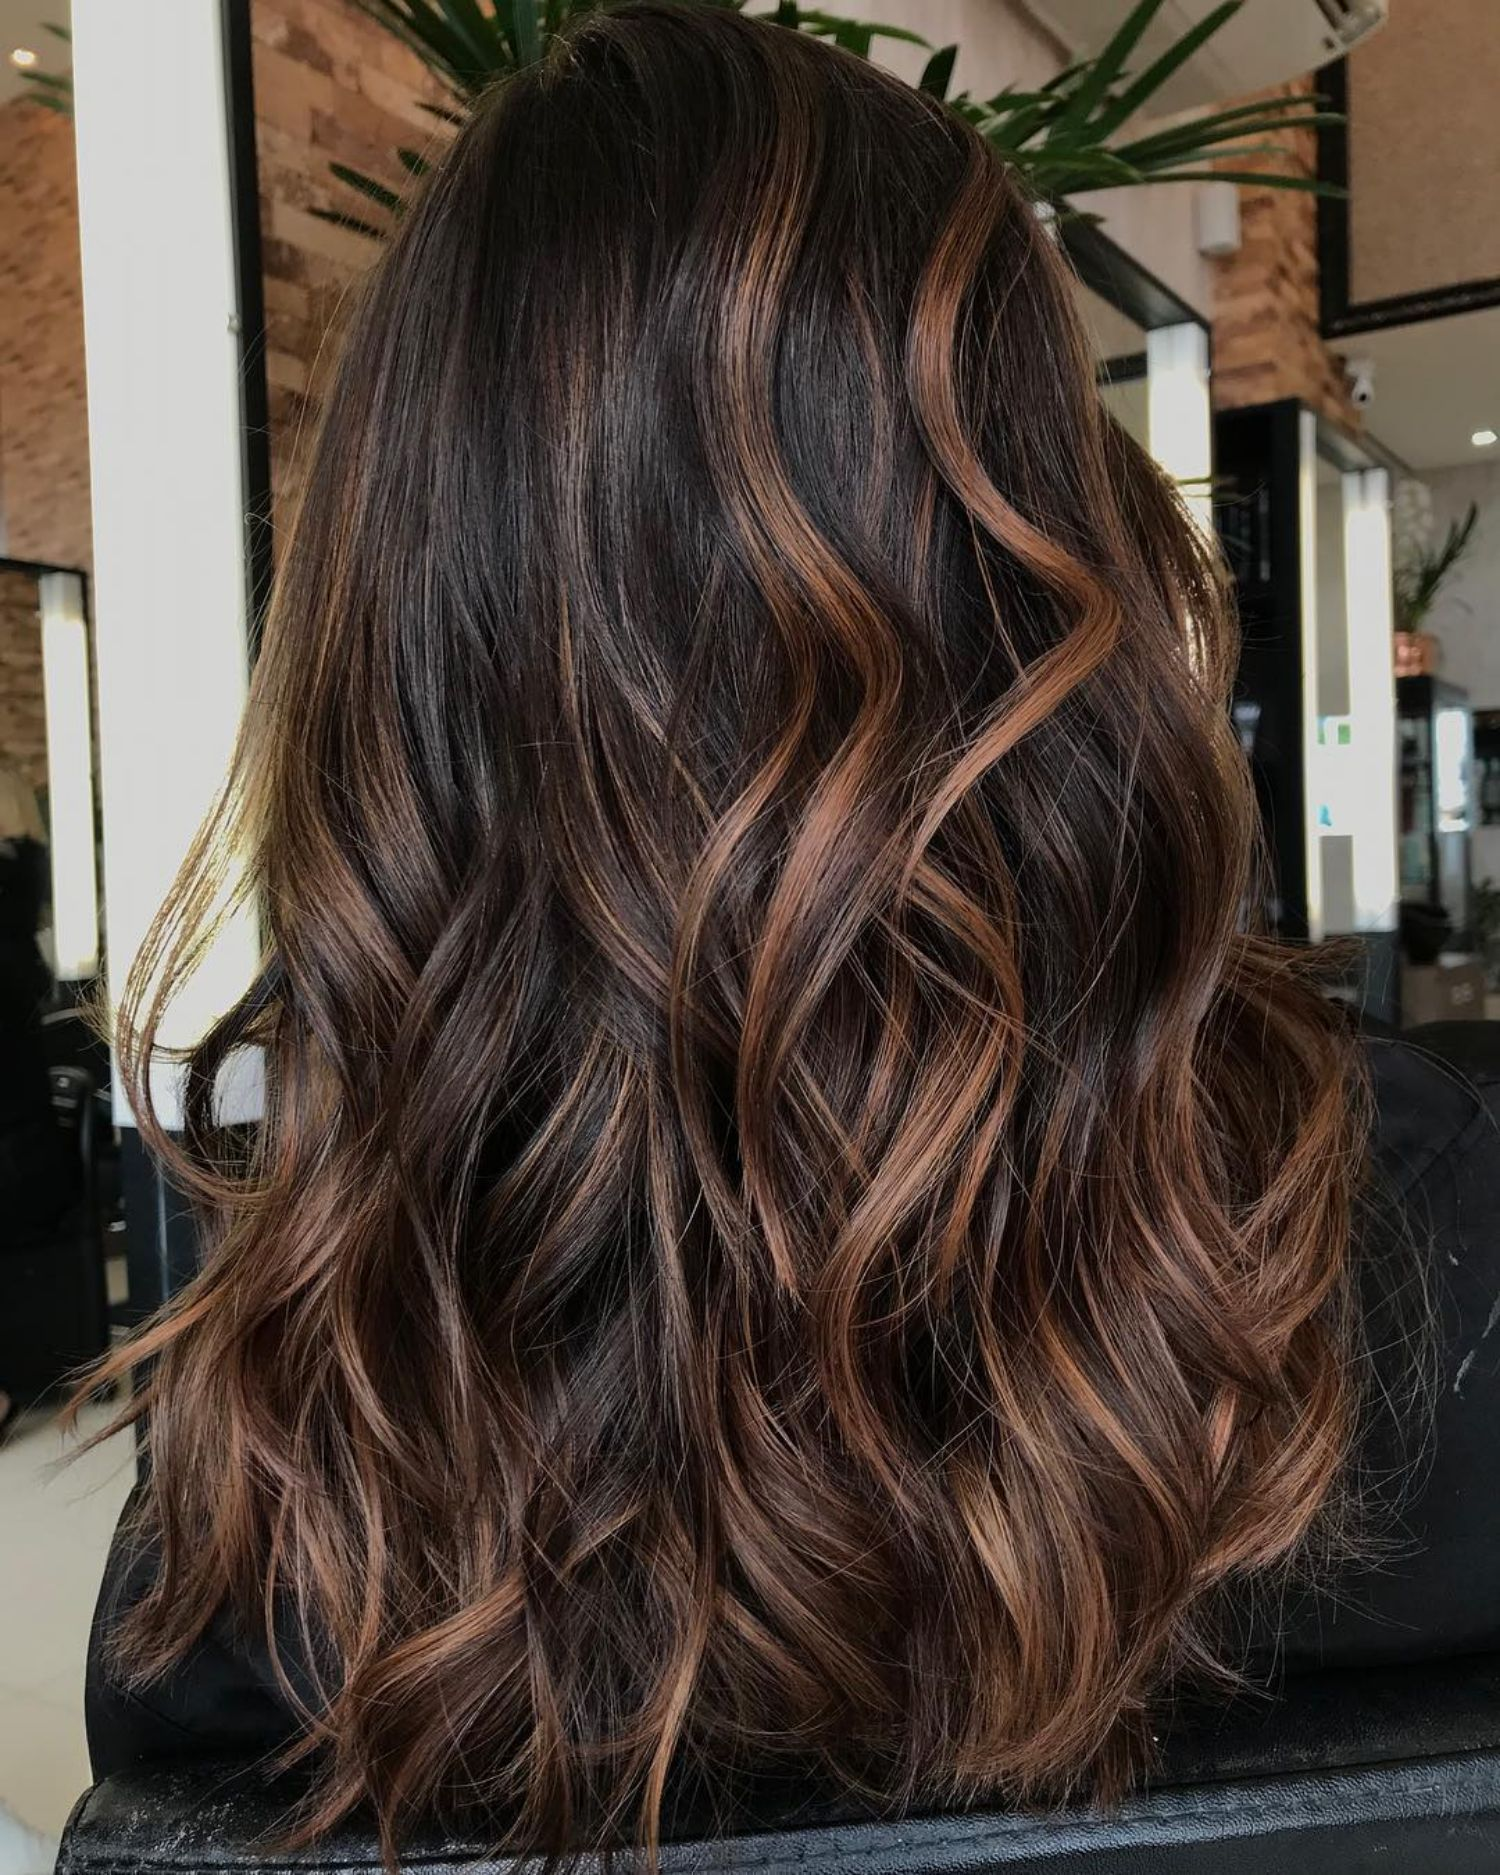 60 Hairstyles Featuring Dark Brown Hair With Highlights Hair Highlights Hair Styles Brown Hair With Highlights